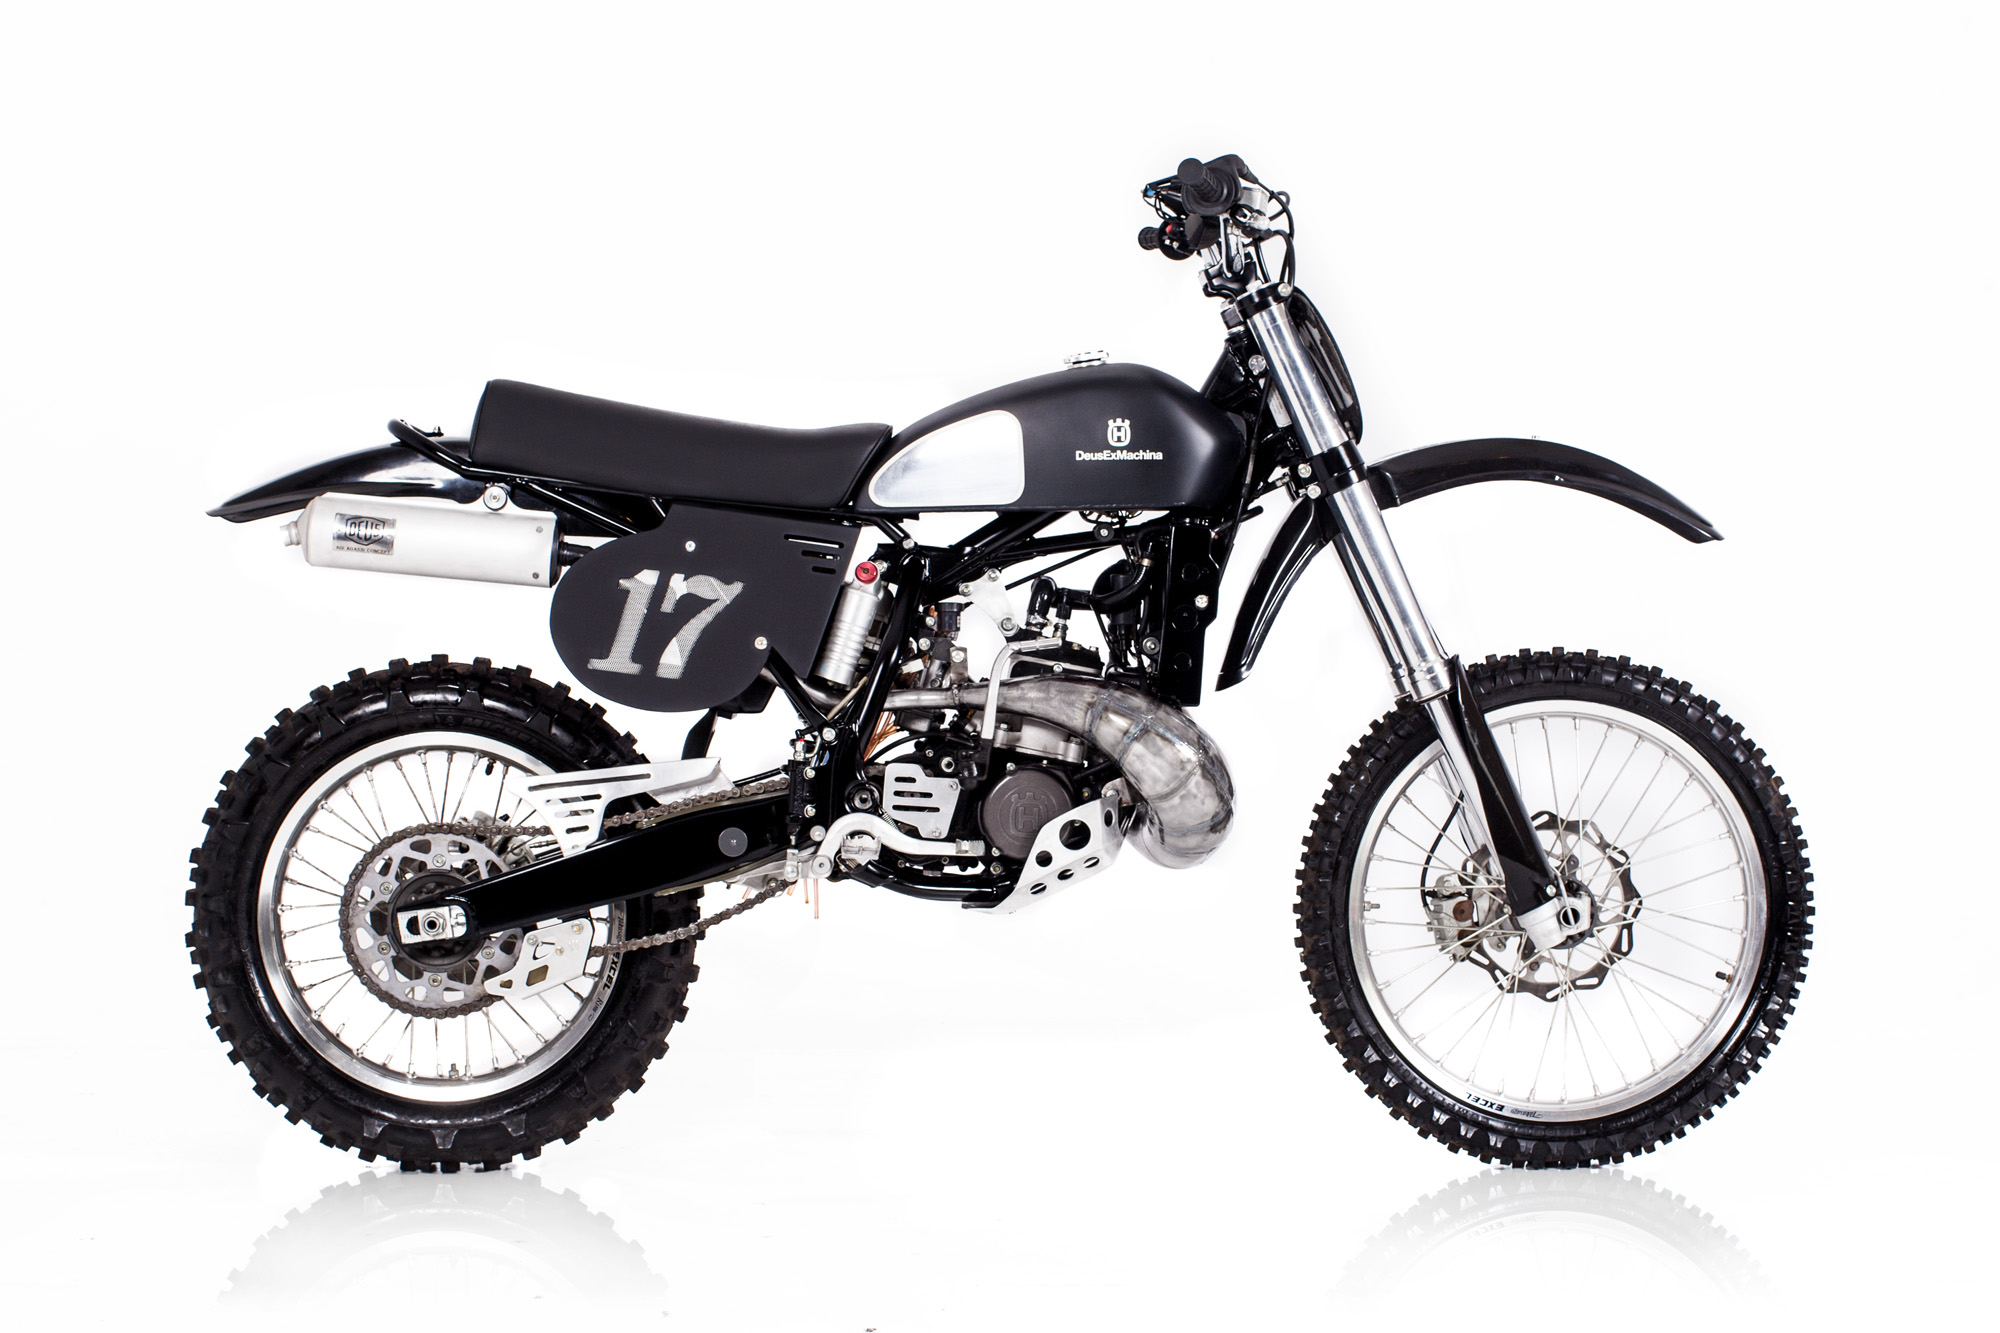 Swede Deus Ex Machinadeus Machina Crf 150 Honda Dirt Bikes An Error Occurred